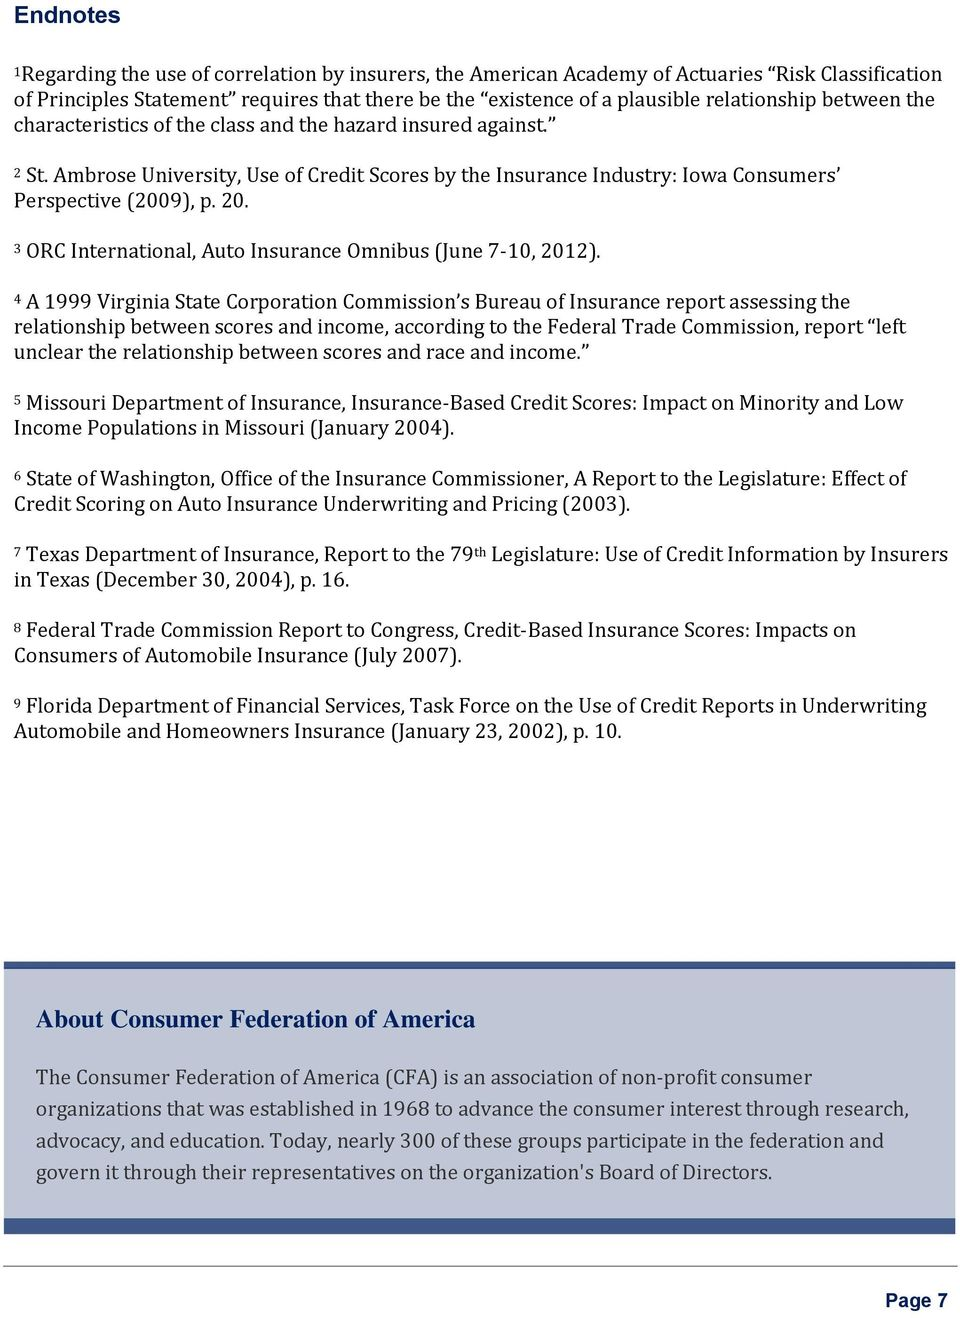 3 ORC International, Auto Insurance Omnibus (June 7-10, 2012).